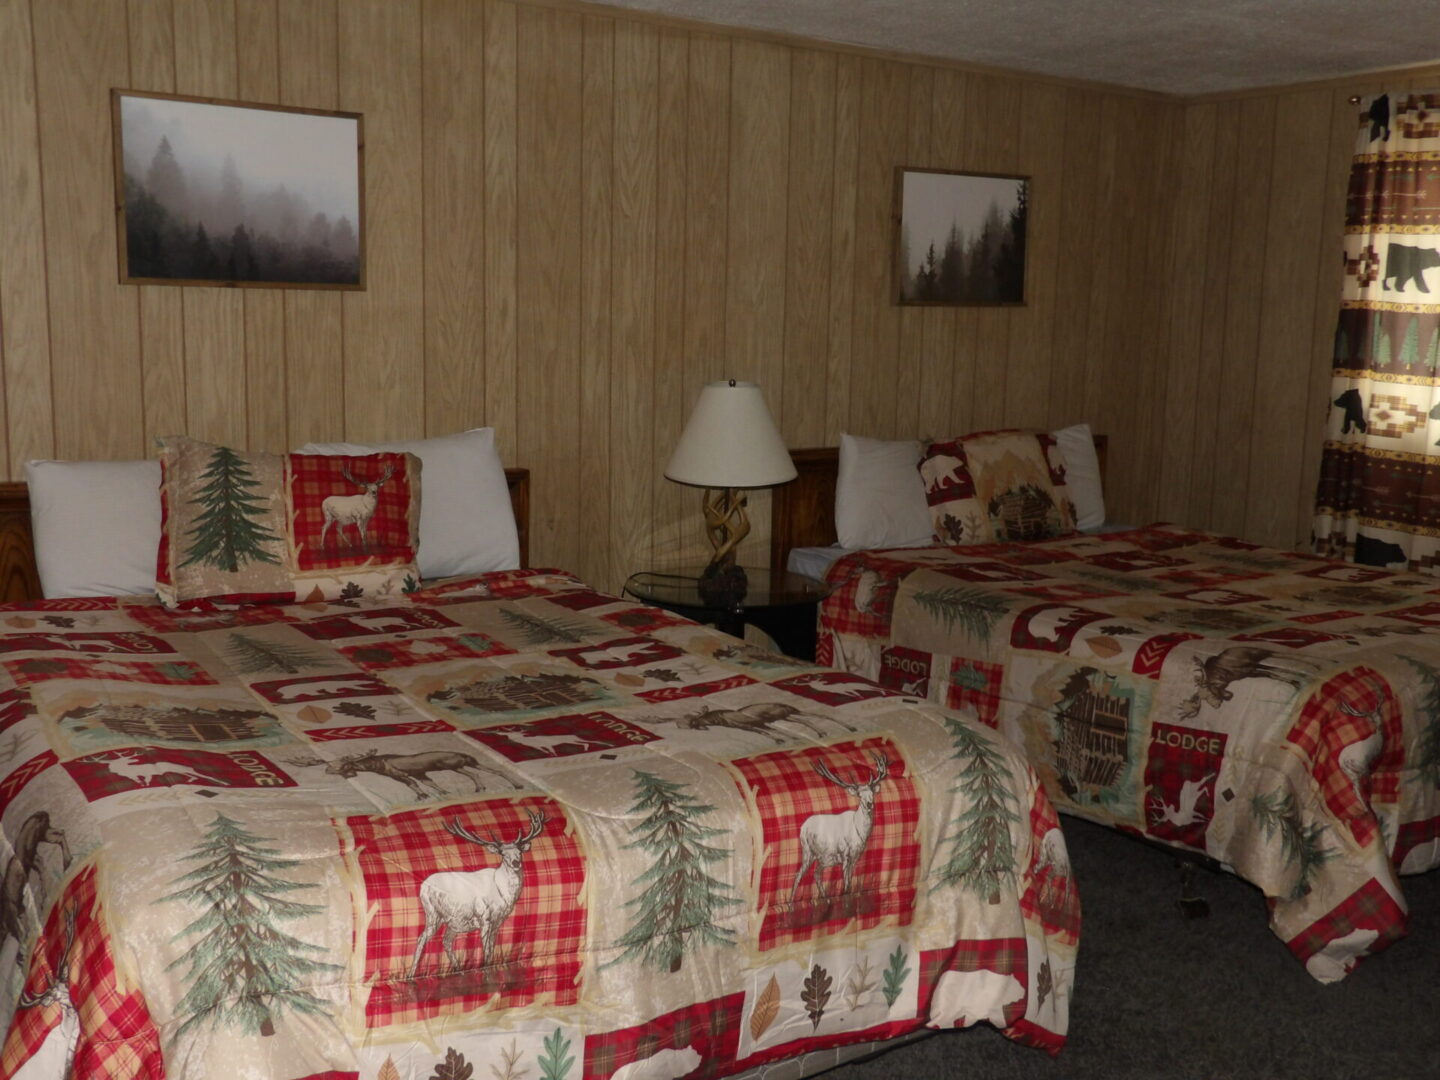 beds with forest-themed furnishings